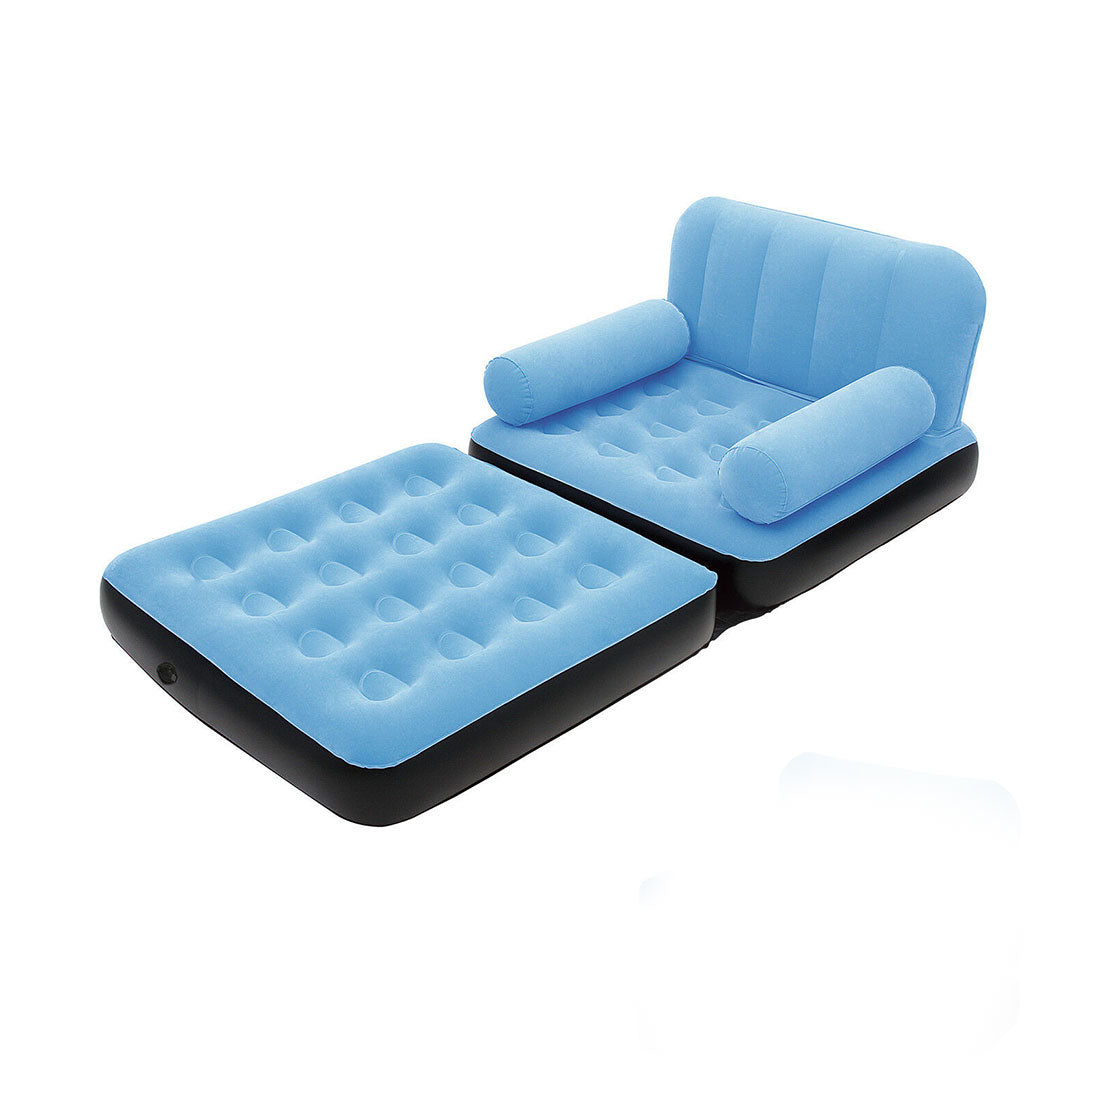 Bestway Inflatable 2 in 1 Couch Chair Air Bed Single - blue